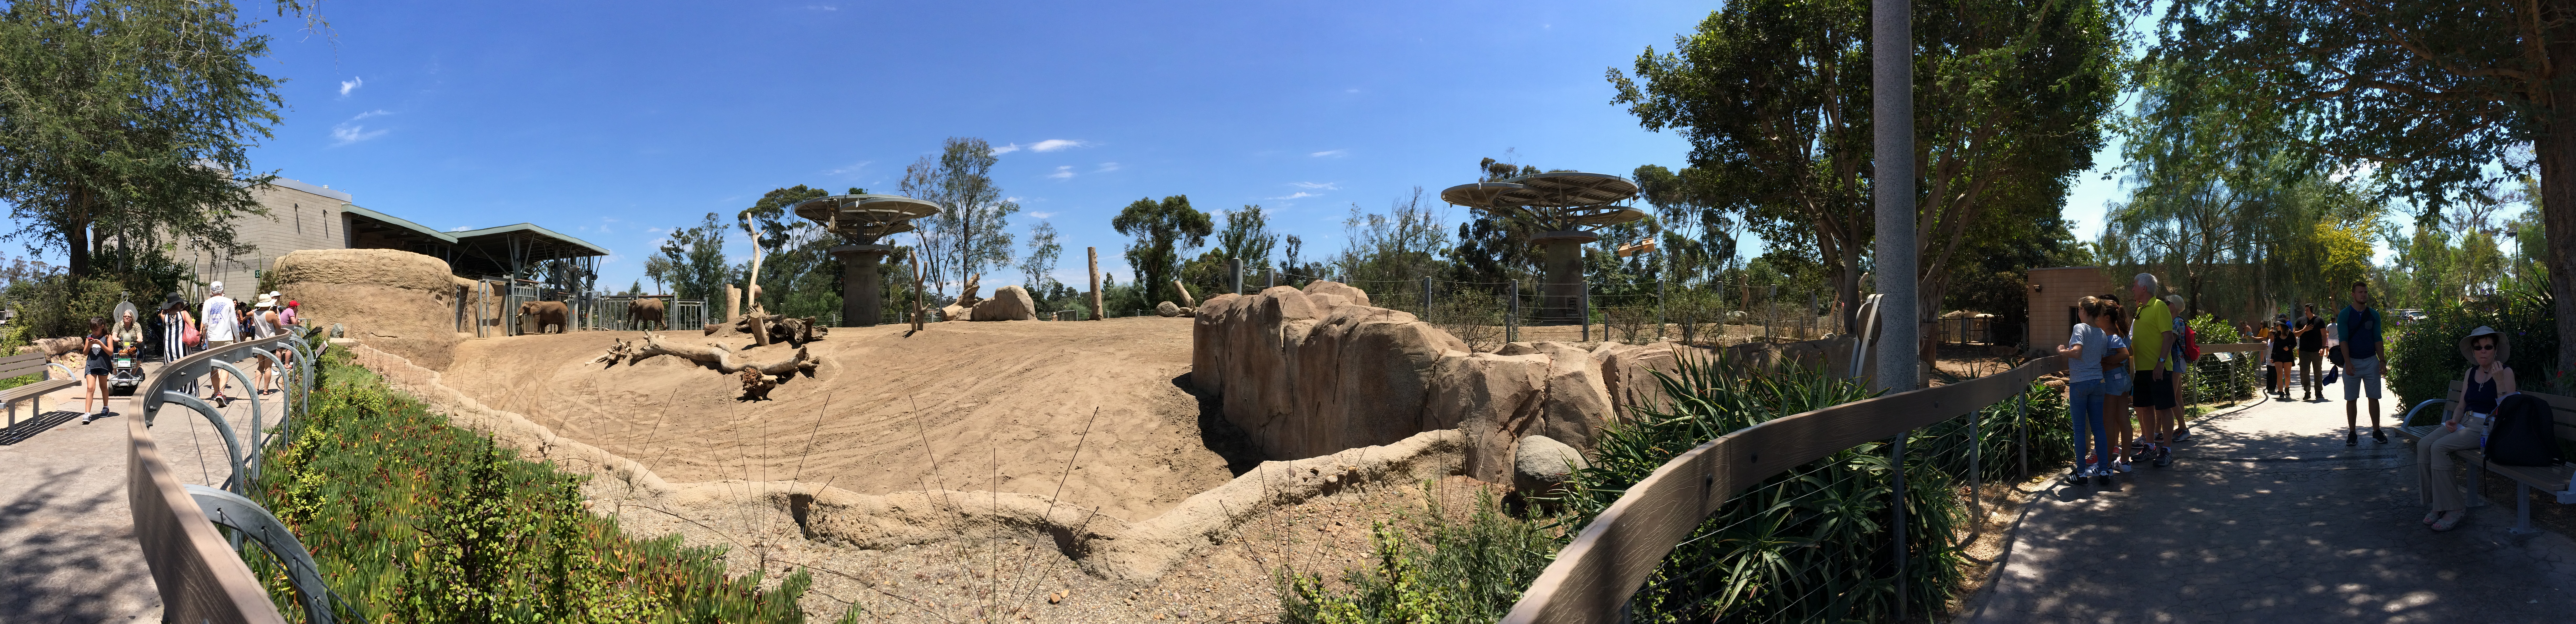 Years ago, visitors who walked the acres in the far reaches of the zoo did so without shade. Today, rich foliage provides relief from the hot August sun in the area called Elephant Odyssey. (Photo by David Paul Ondash)